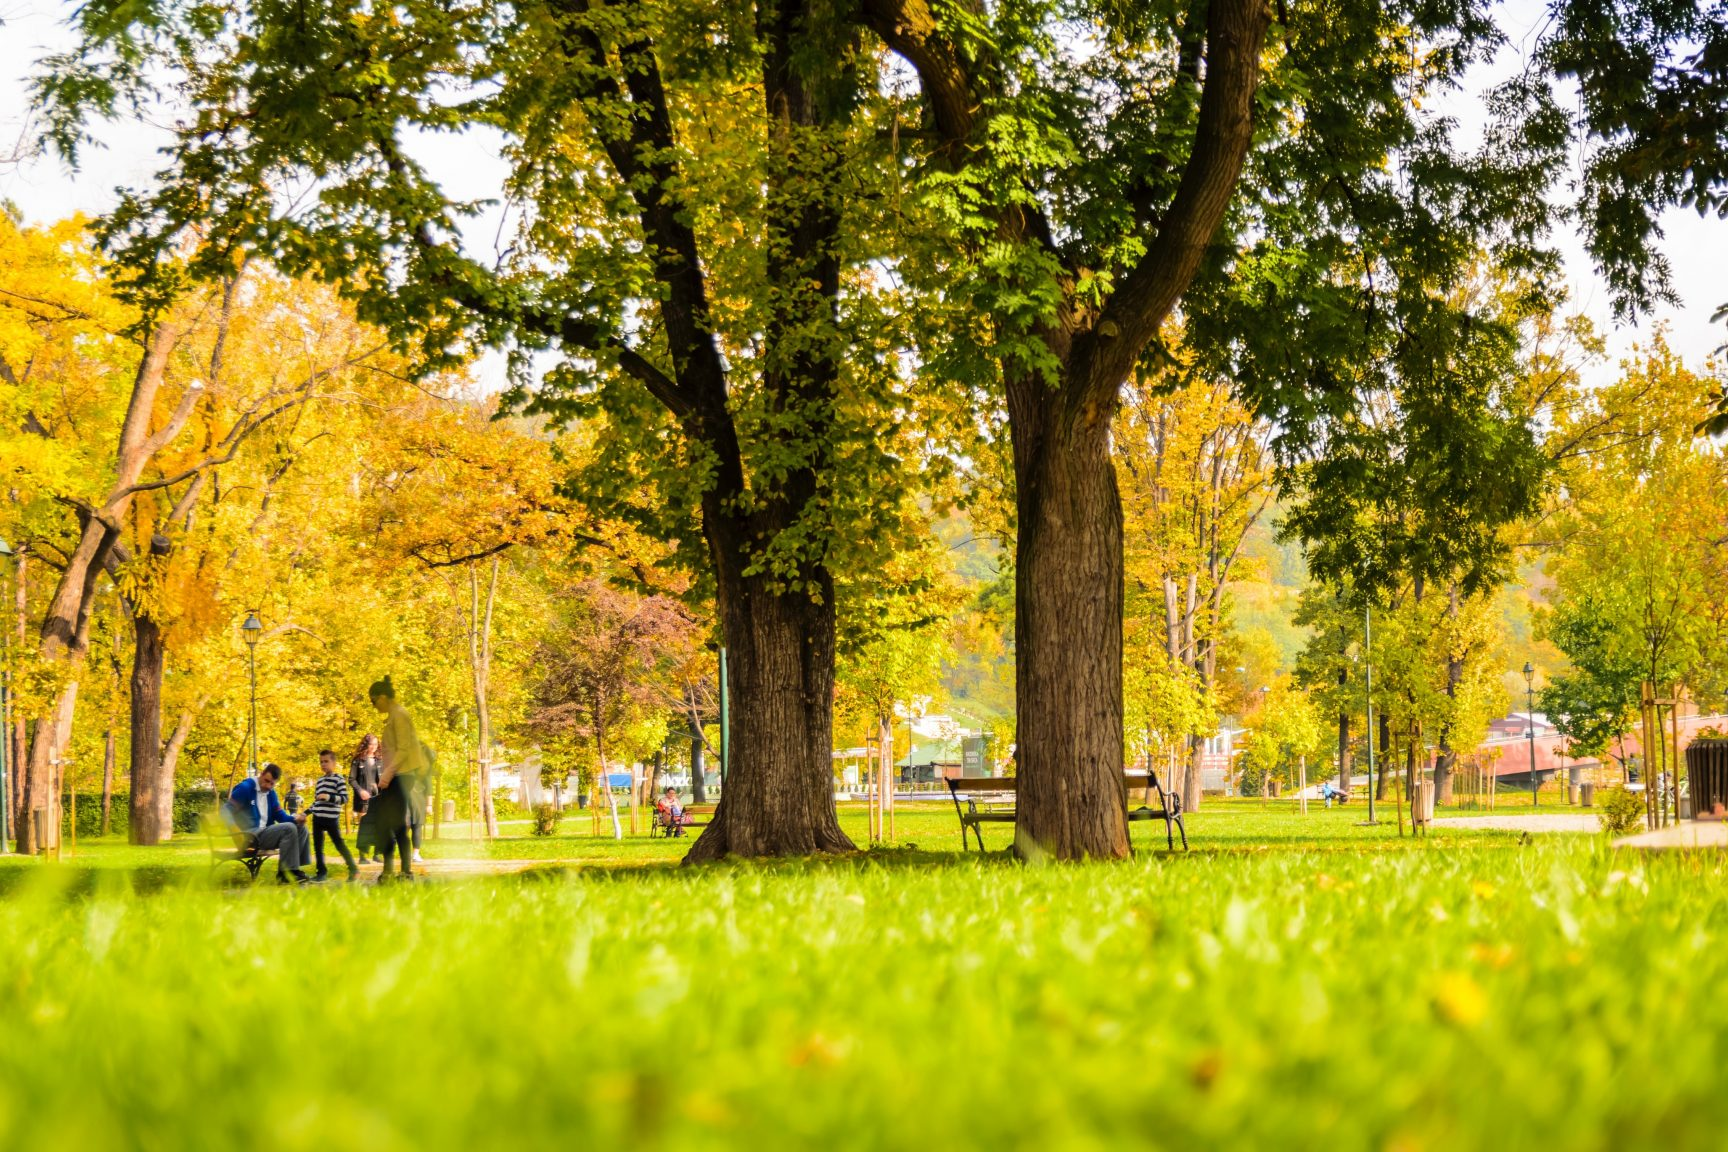 A park full of trees, the grass is green and the tree leaves are starting to turn yellow.